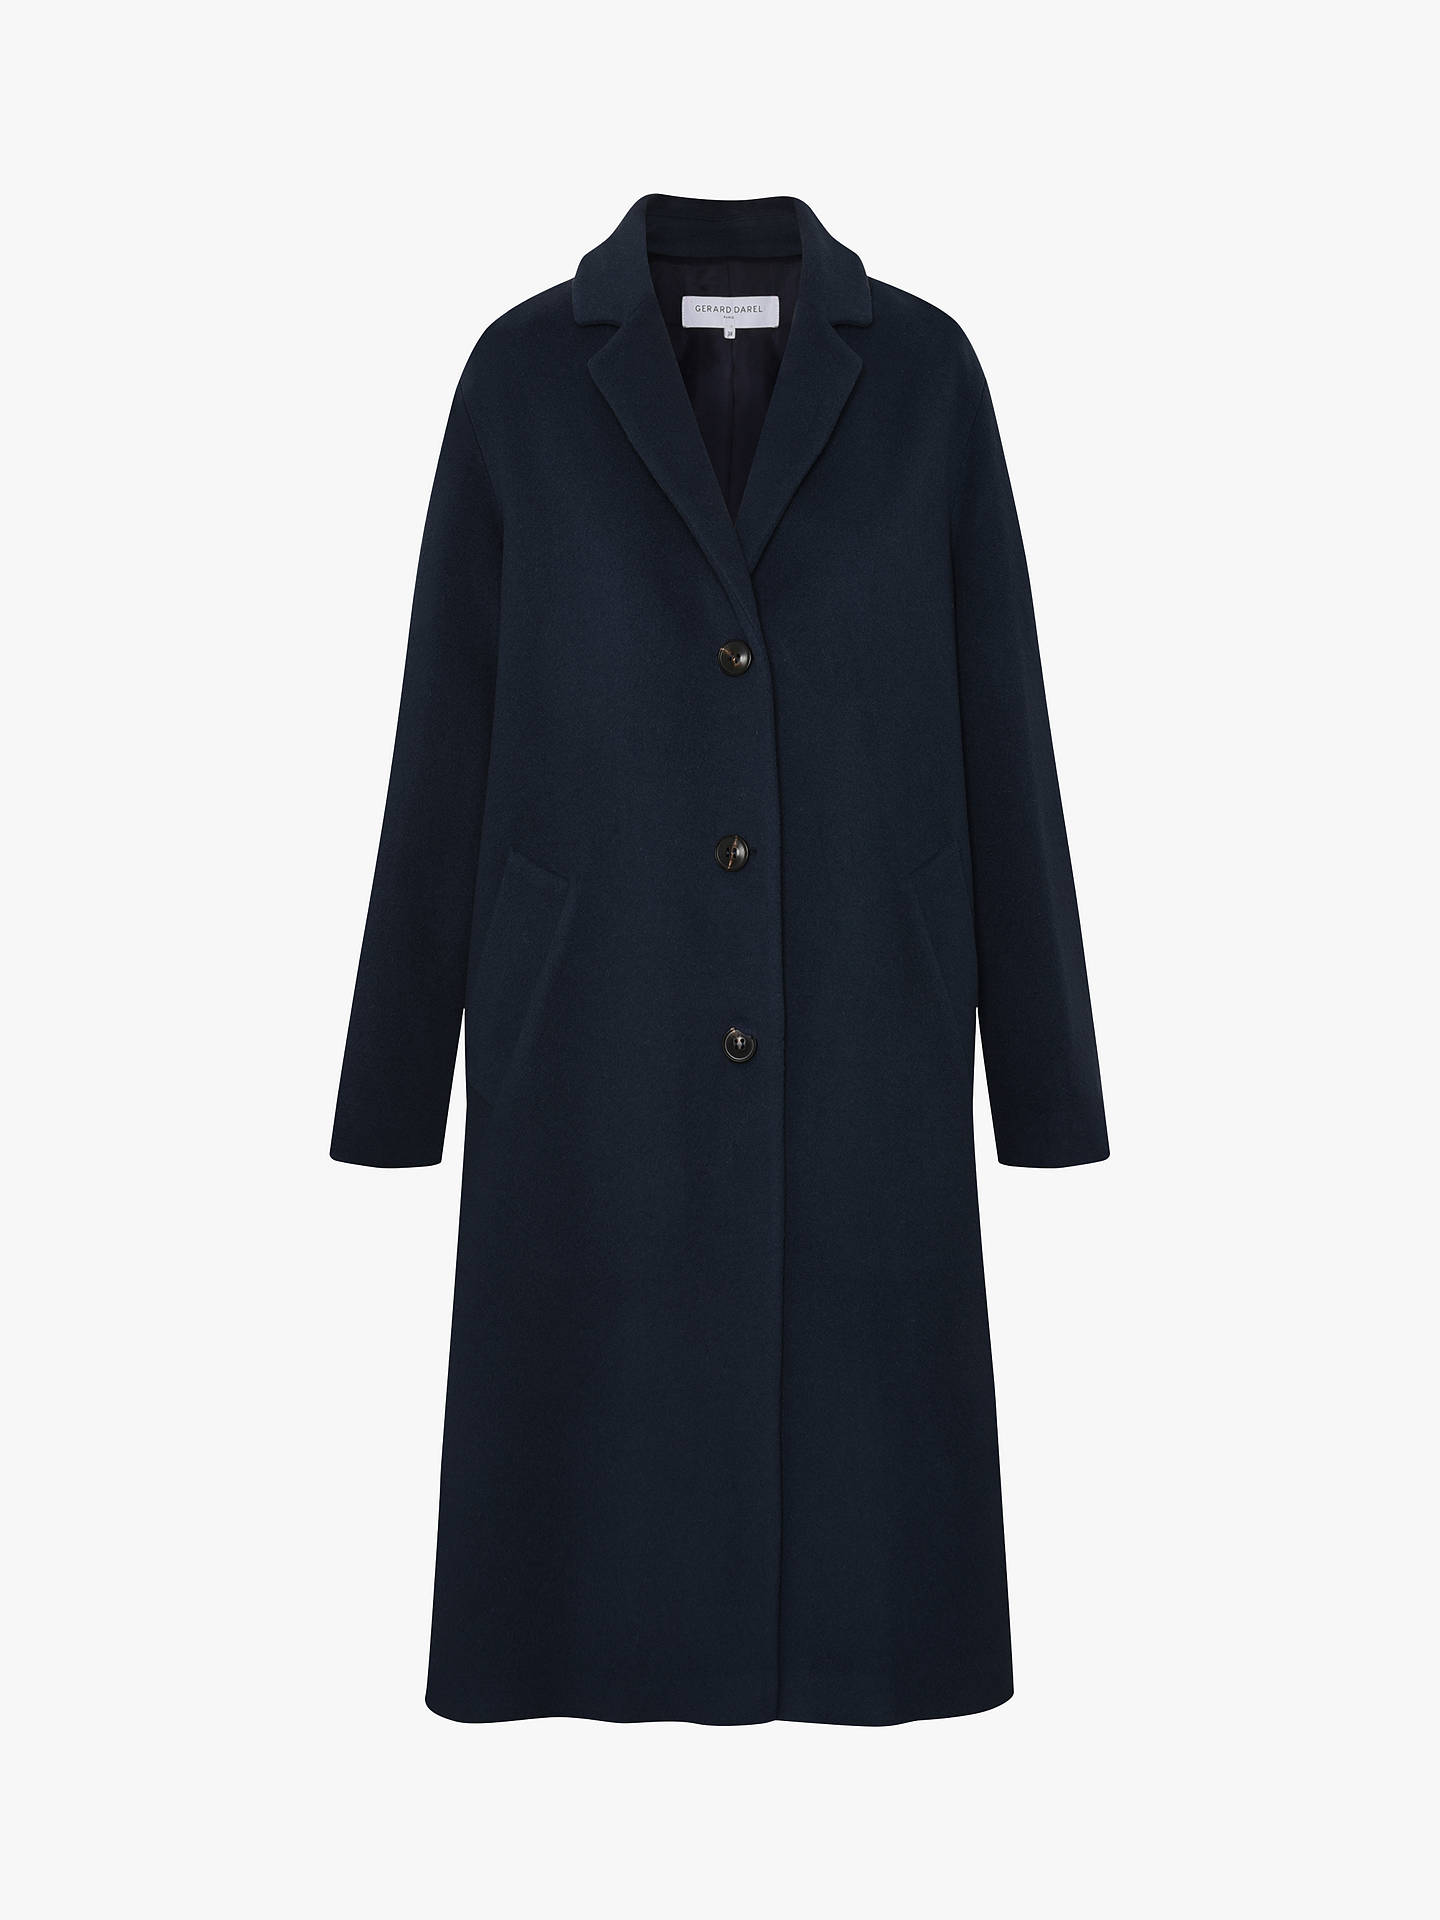 Buy Gerard Darel Sim Wool Blend Coat, Blue, 6 Online at johnlewis.com